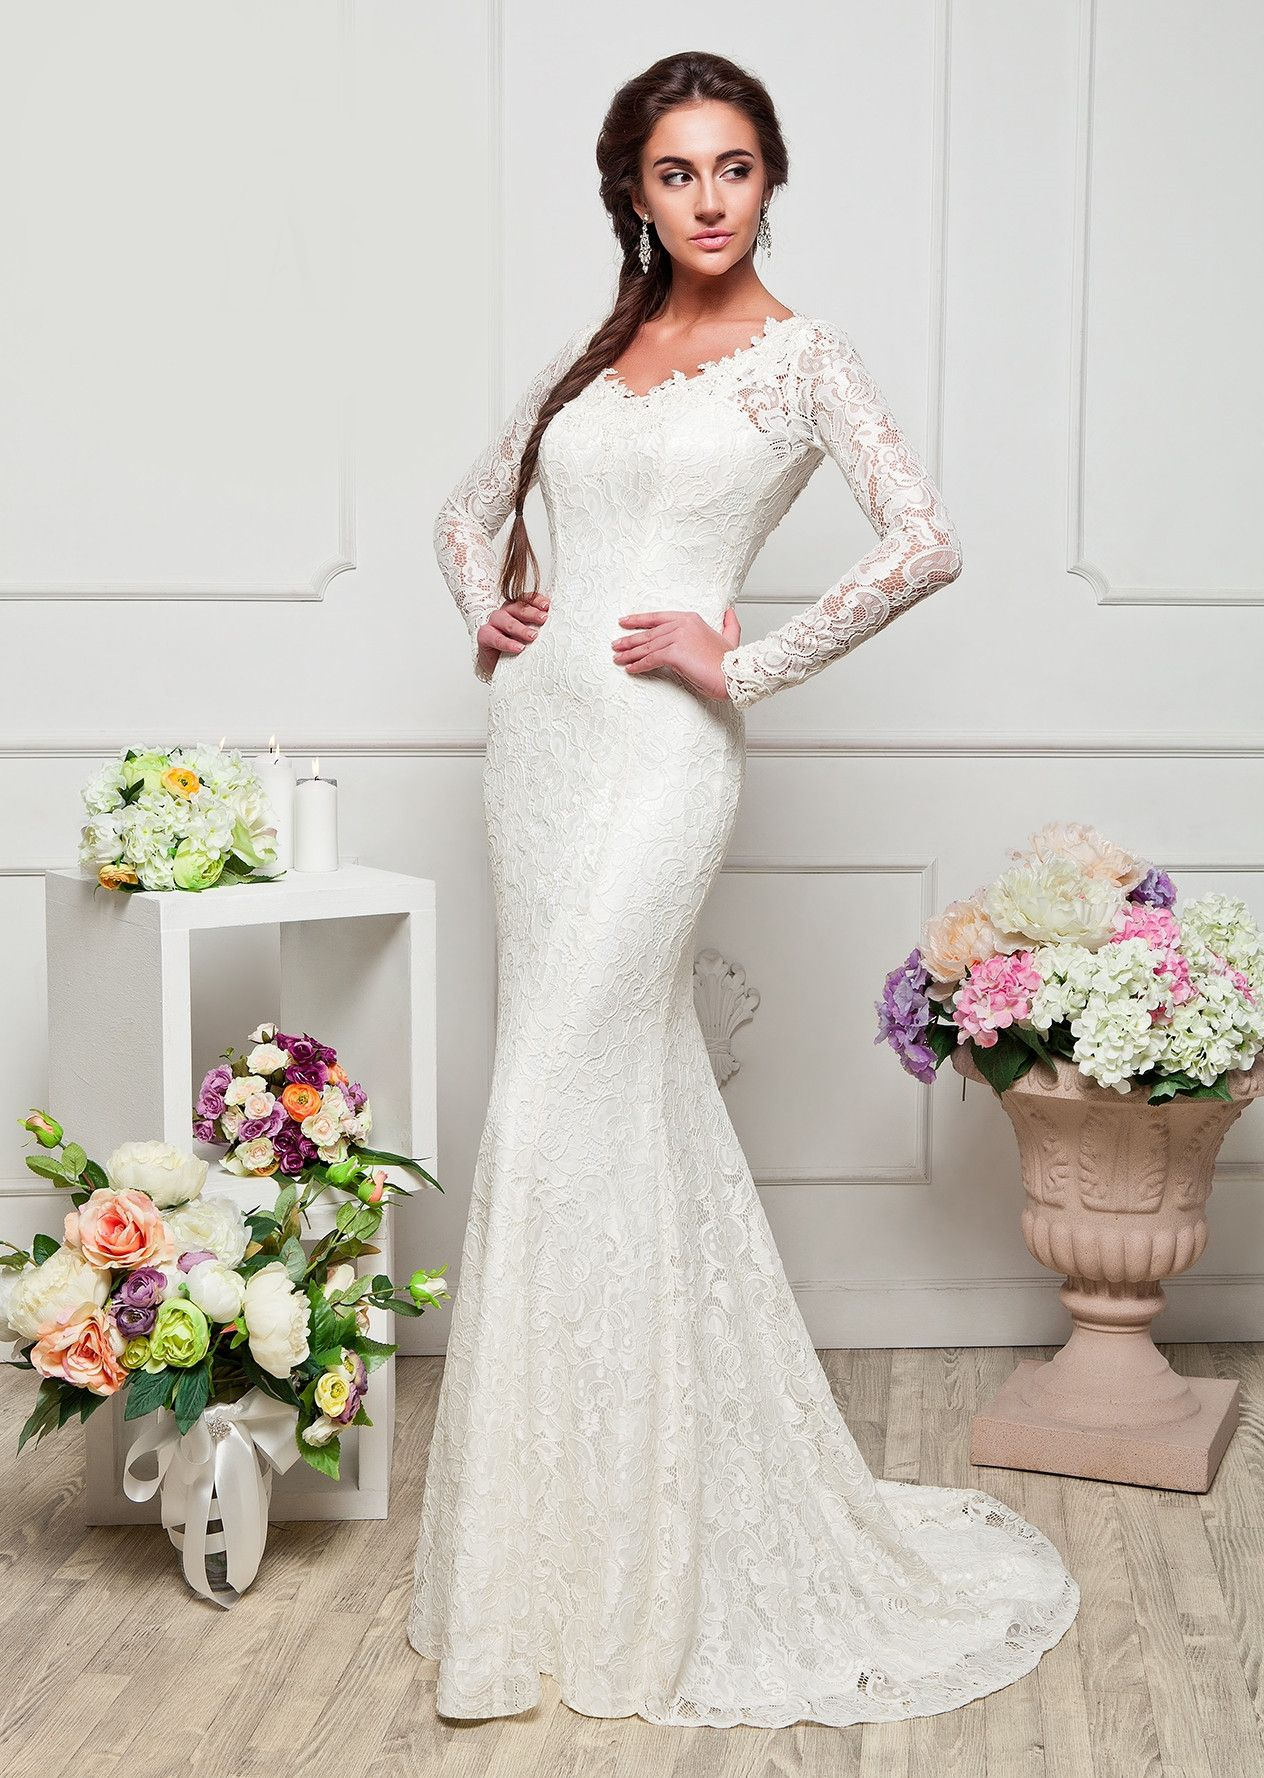 Anasta long lace wedding dress simple long dress unique dresses